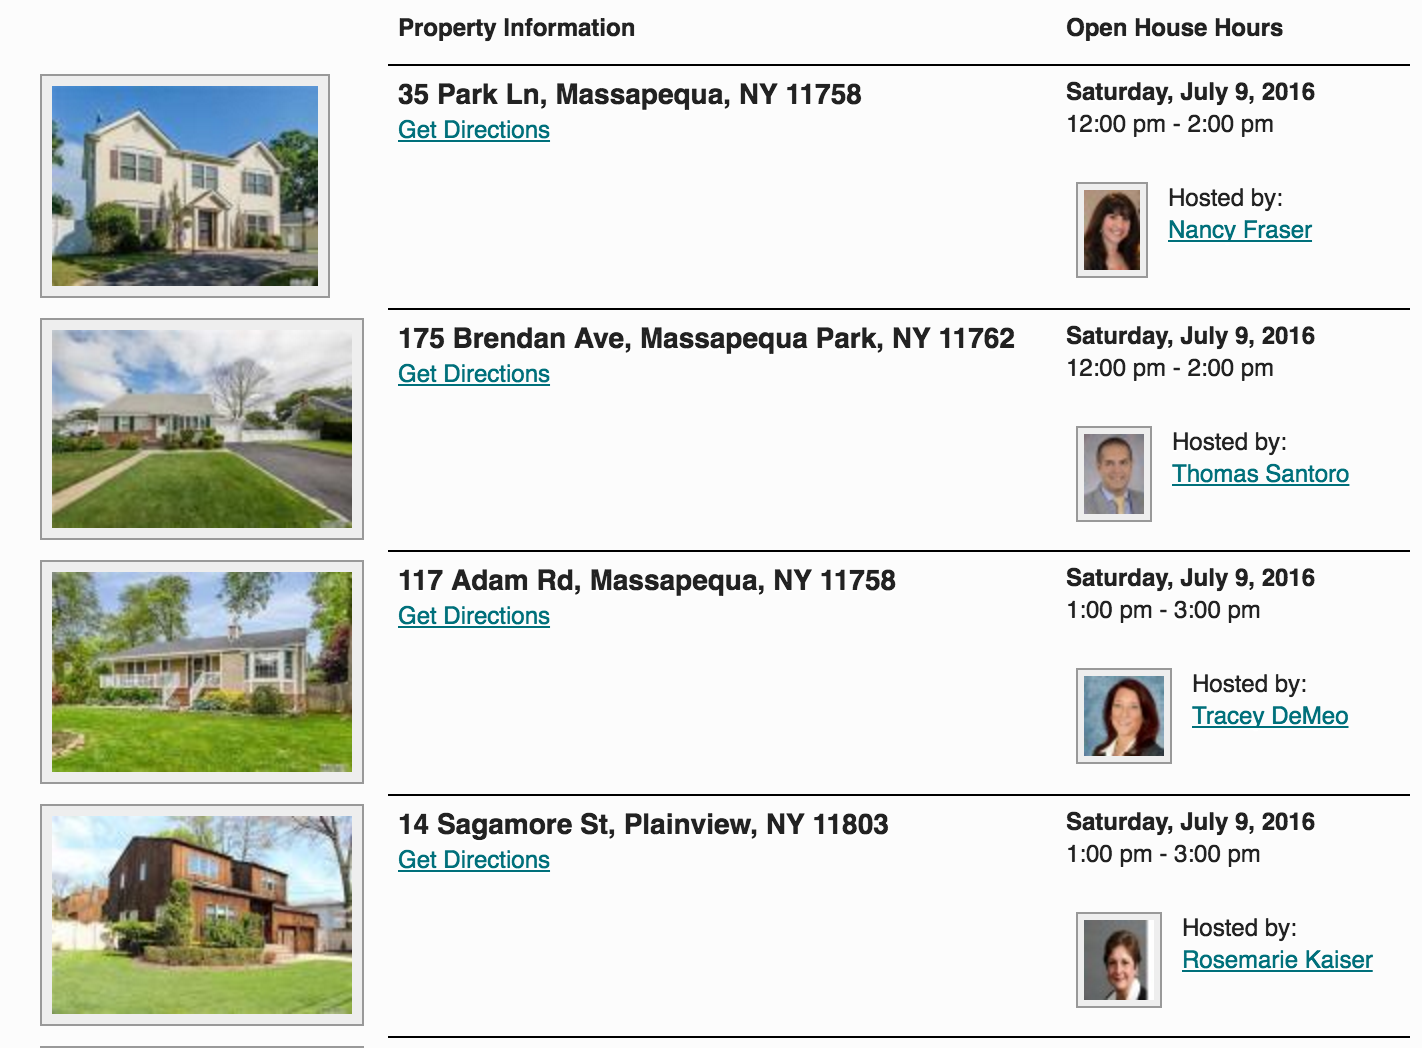 Open Houses This Weekend in Massapequa Park! 7/9 & 7/10